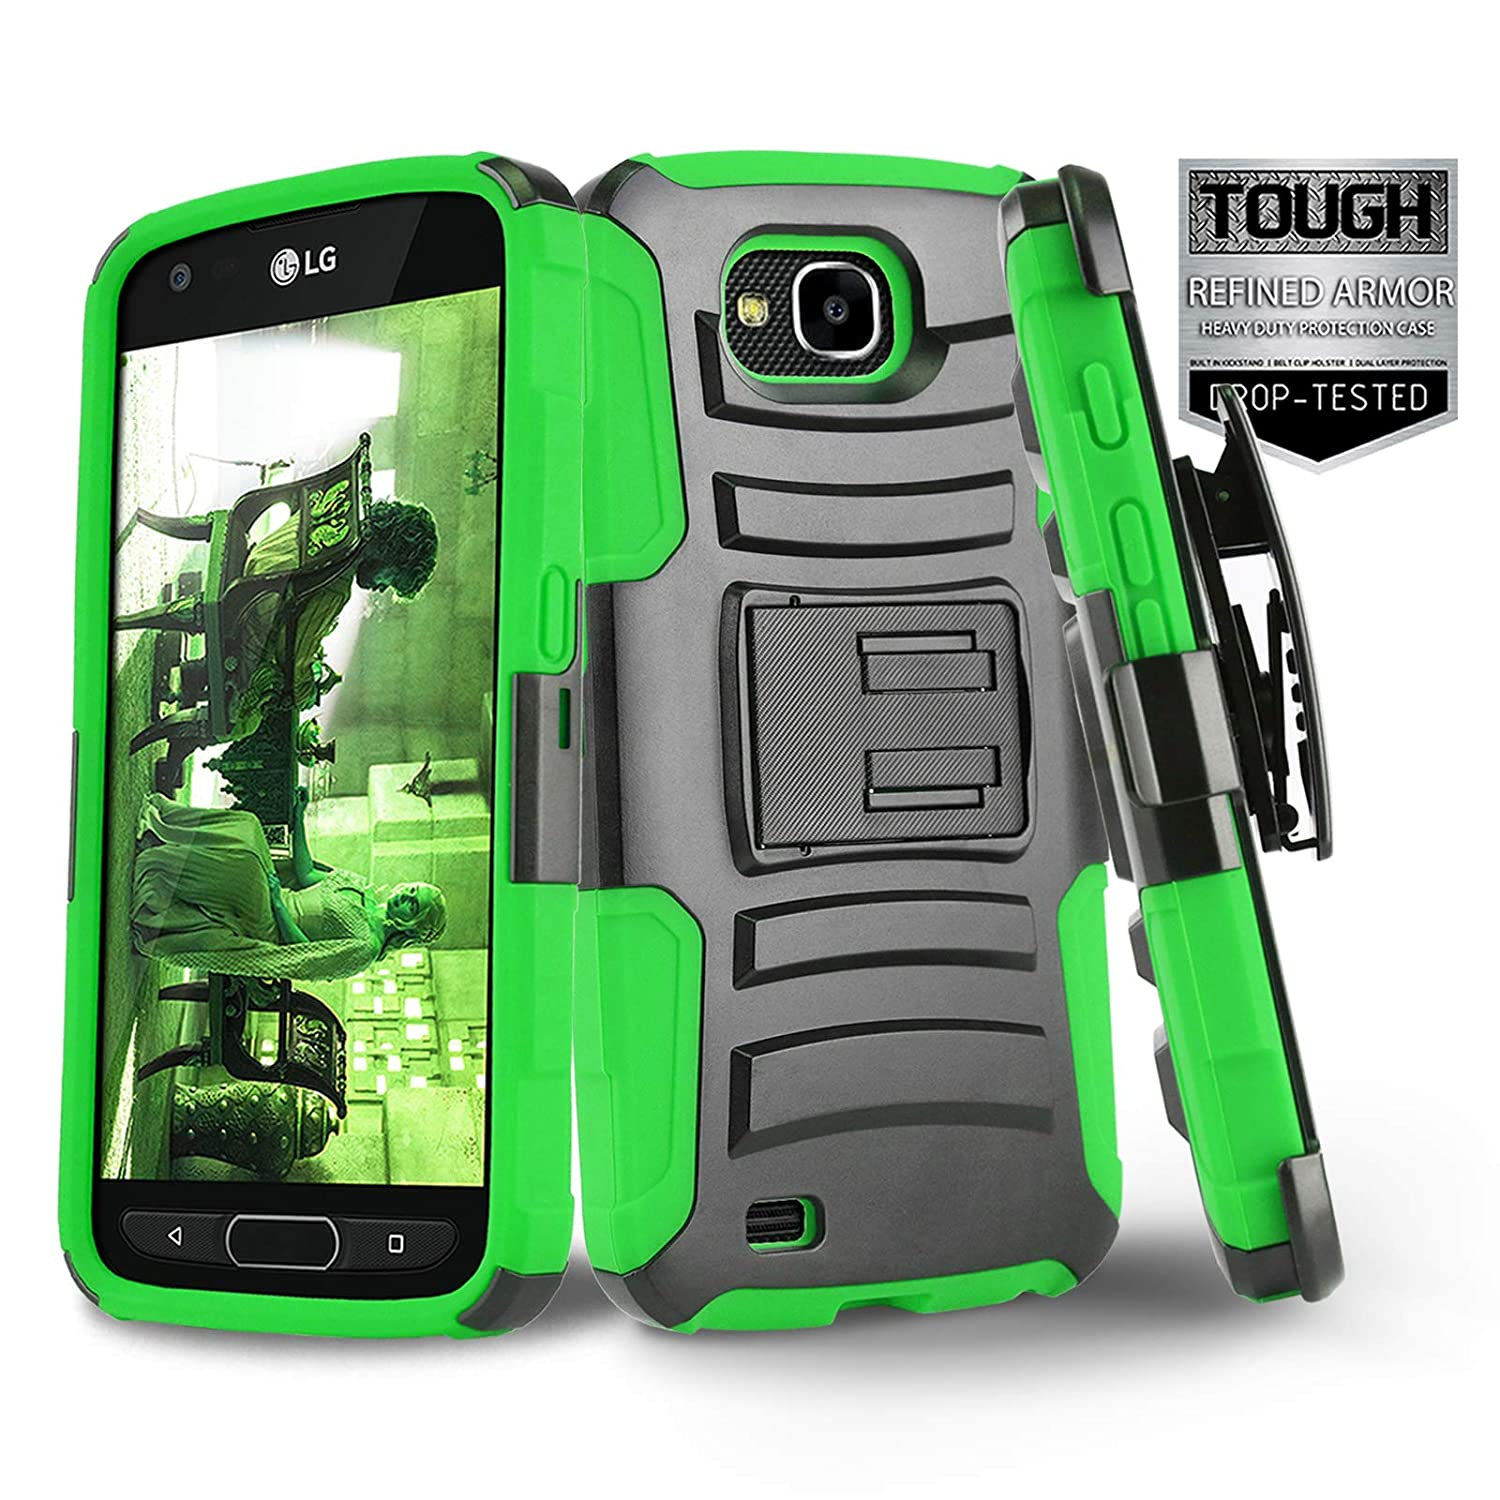 Phone Case for [LG X Venture (AT&T, US Cellular)], [Refined Series][Green] Shockproof Cover with [Kickstand] & [Holster Belt Clip] for LG X Venture (H700) AT&T, US Cellular